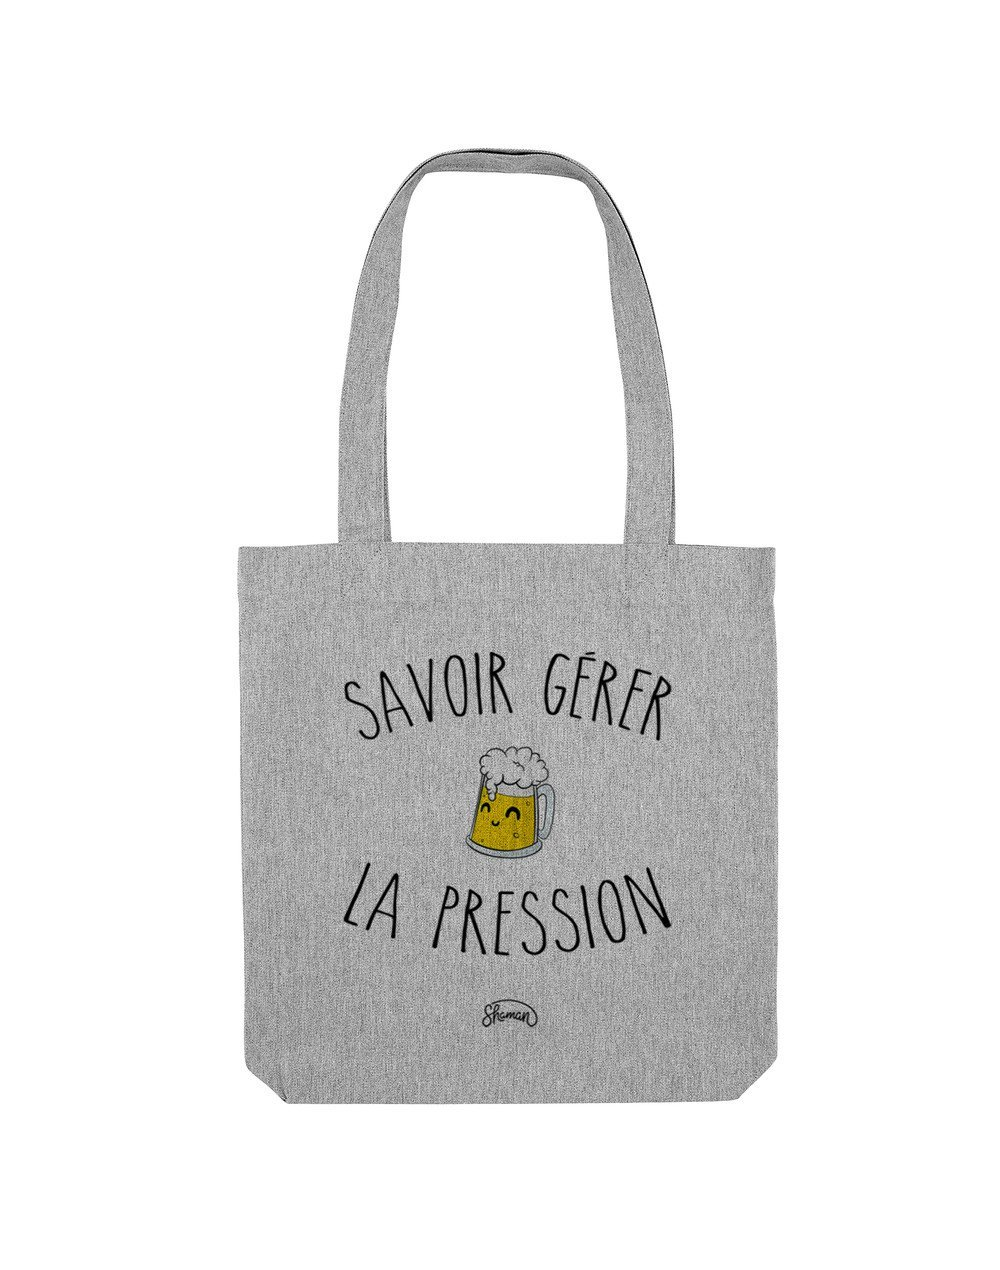 "Tote Bag ""La pression"""